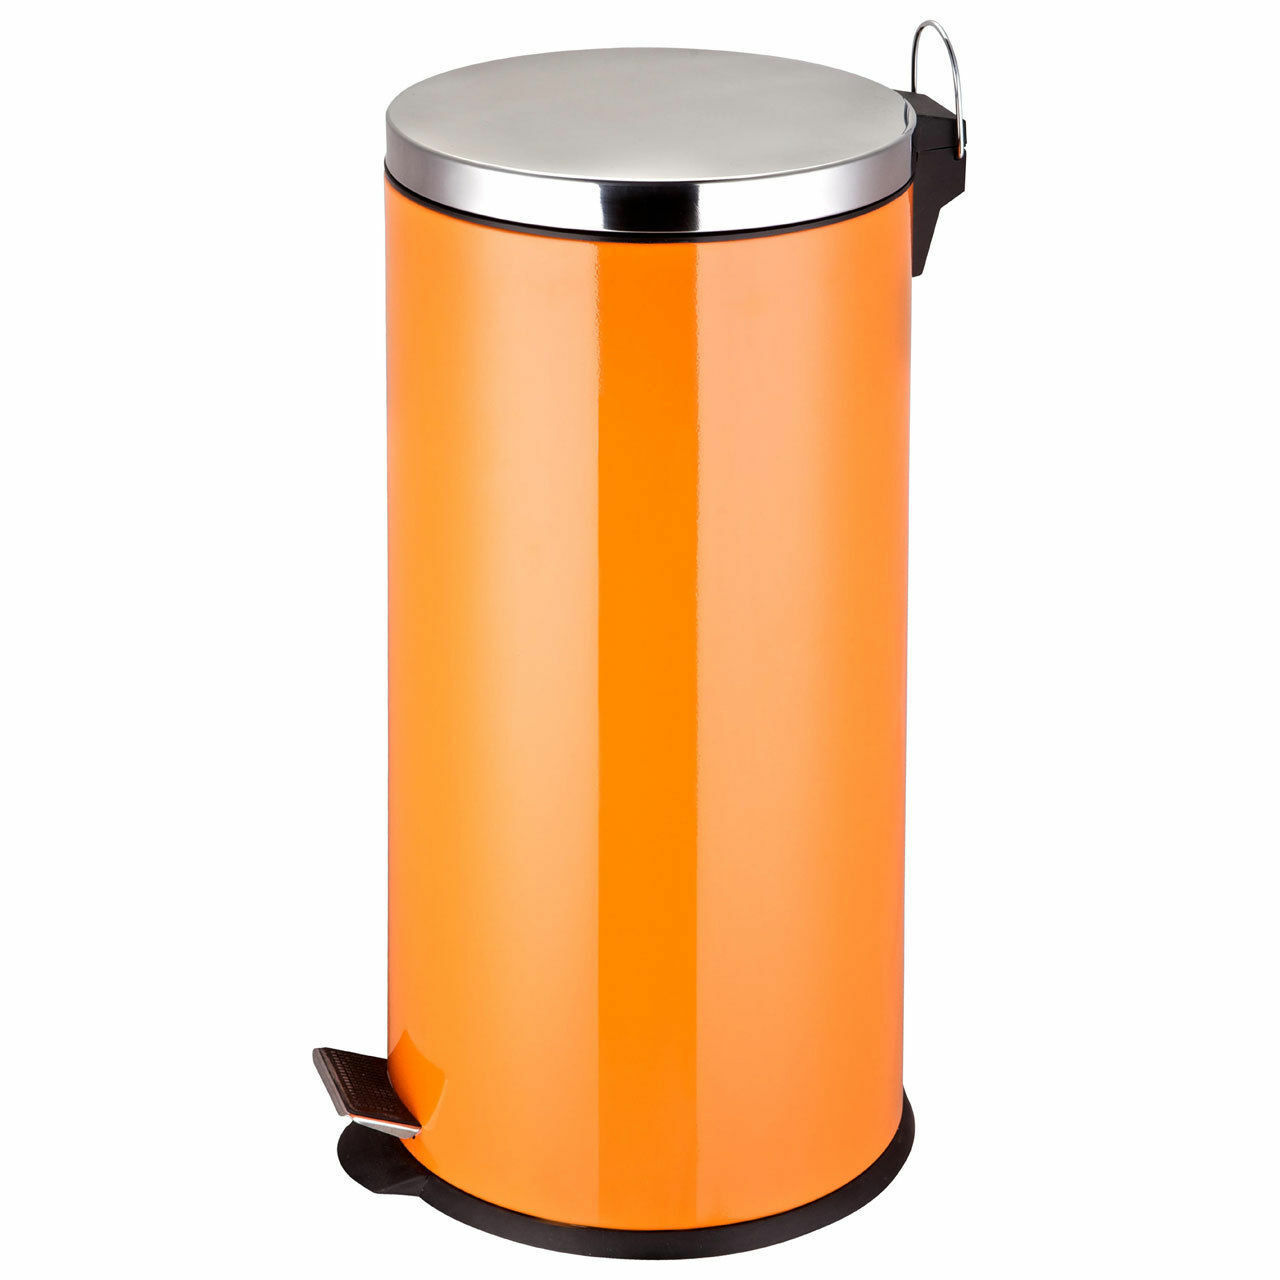 New Orange Pedal Bin 30 Litre Rubbish Kitchen Waste Stainless Steel Recycle Step